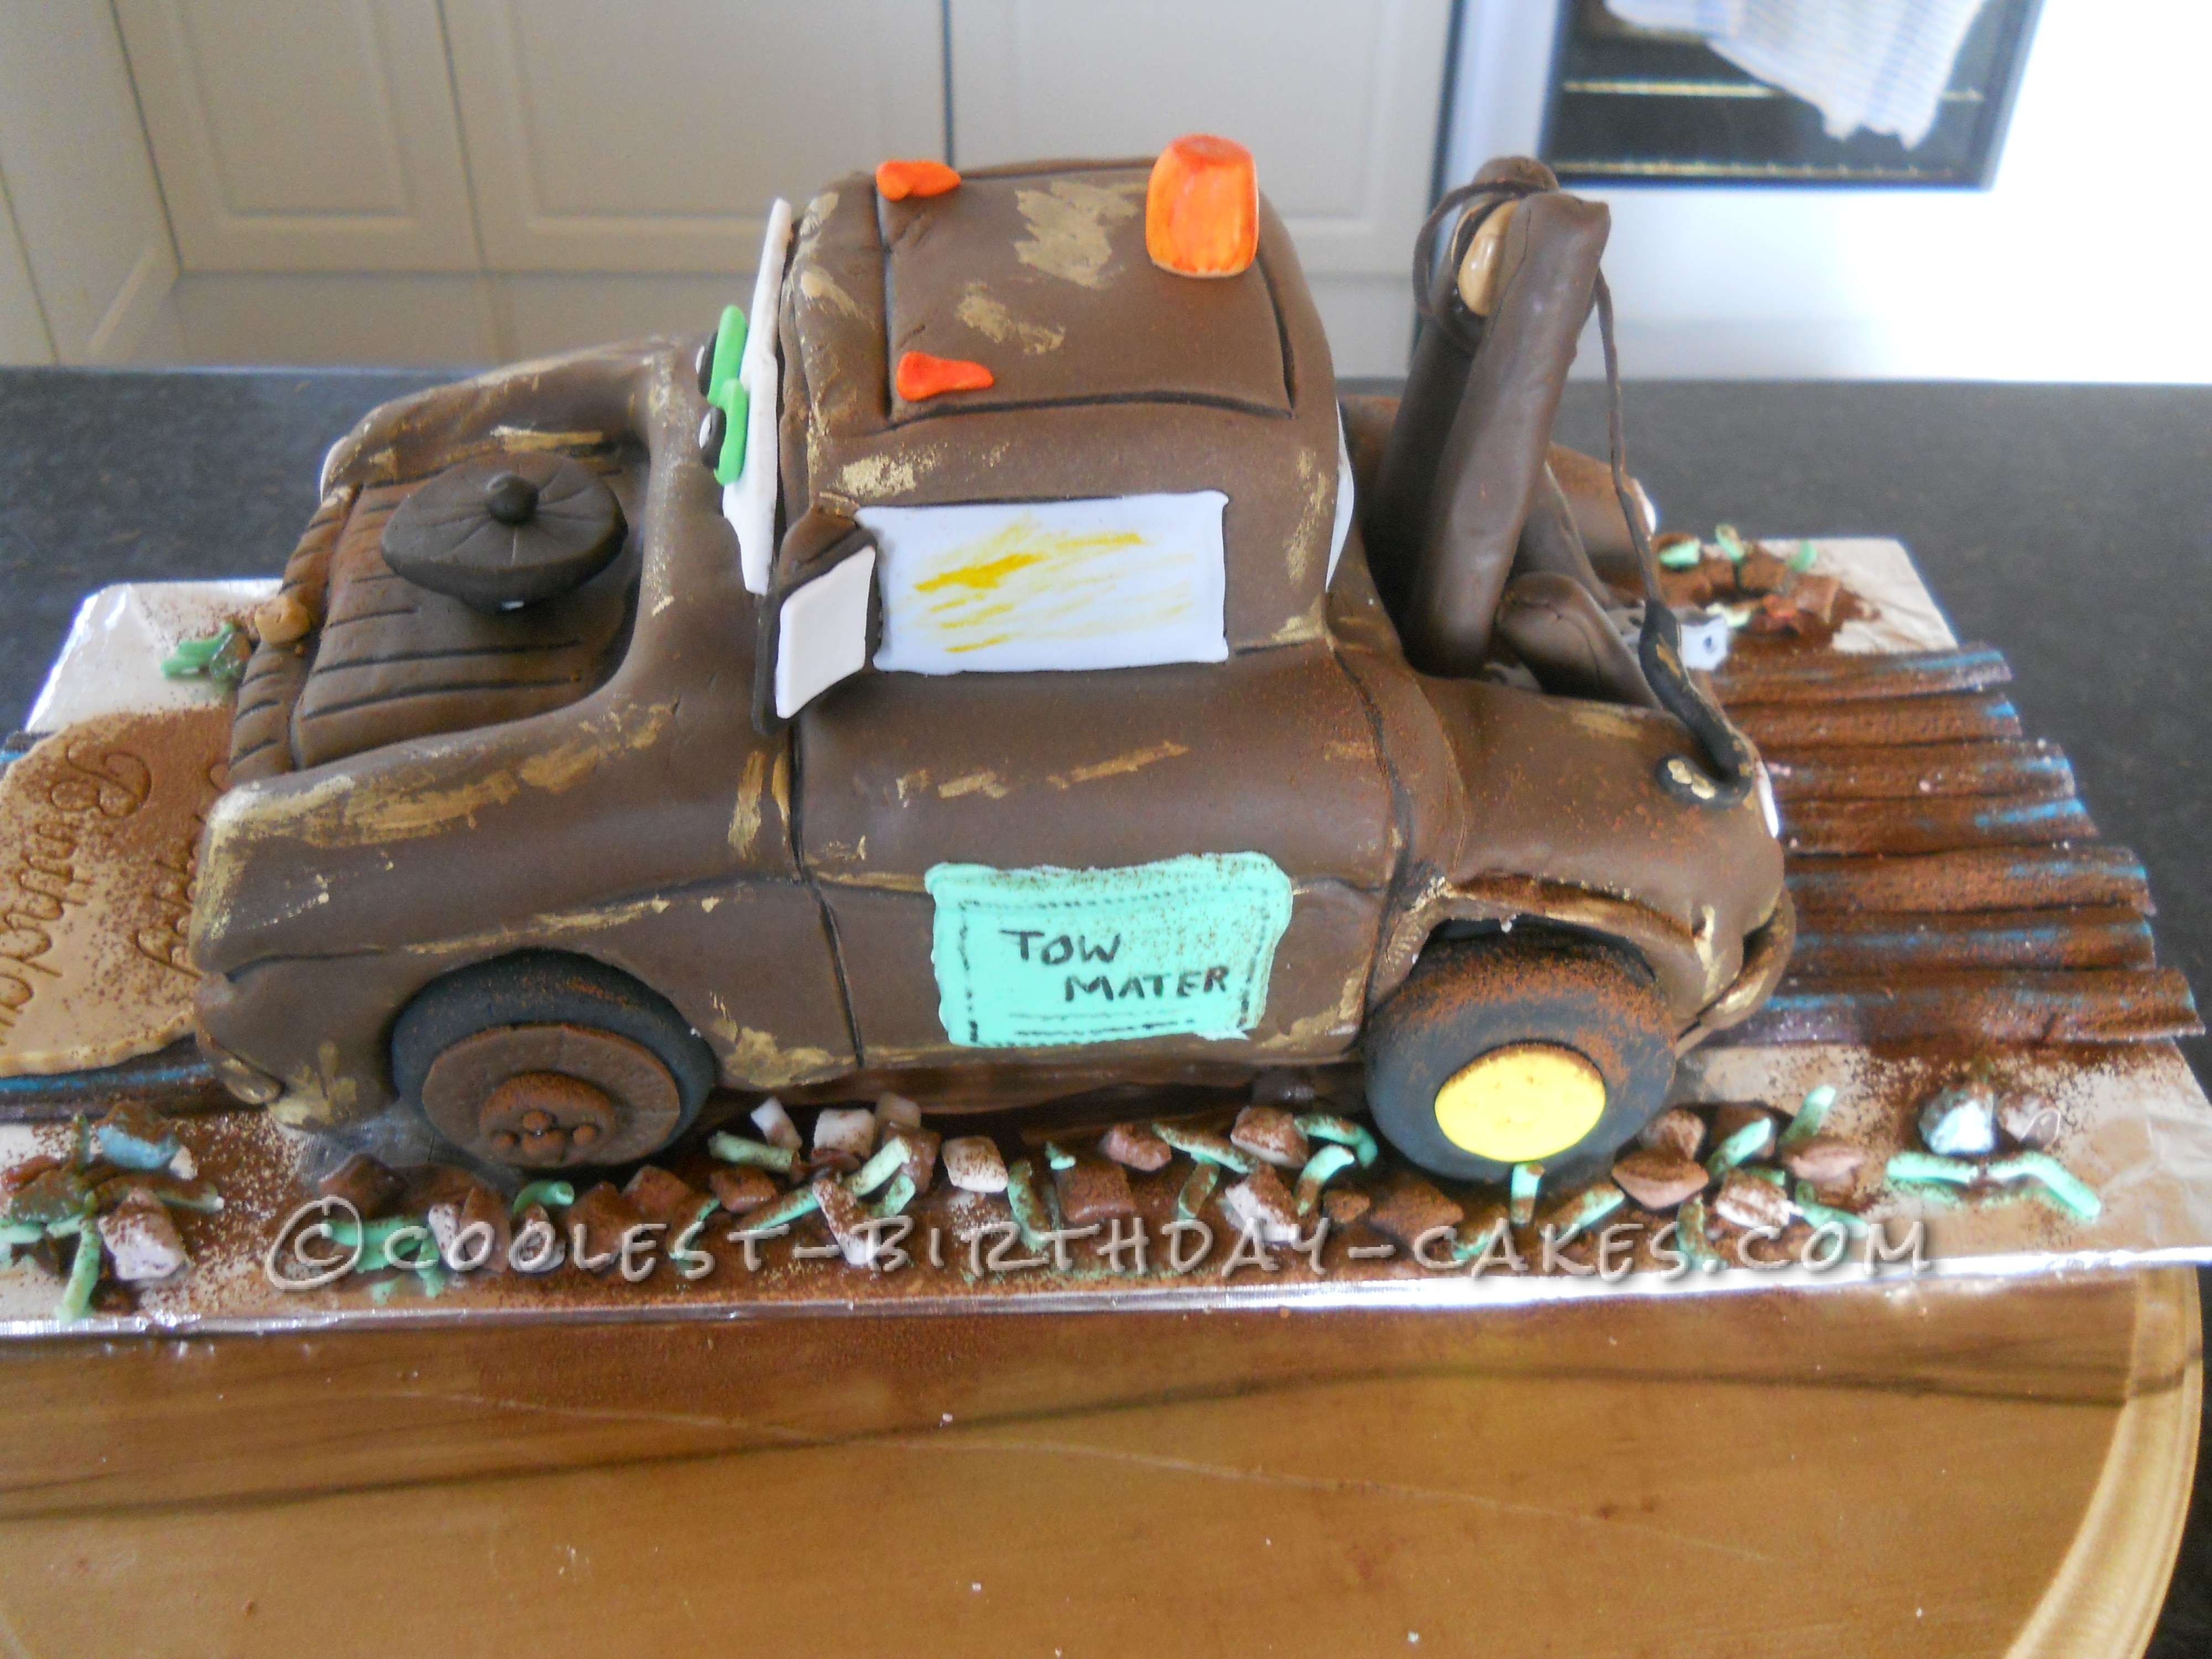 Mater The Tow Truck Cake